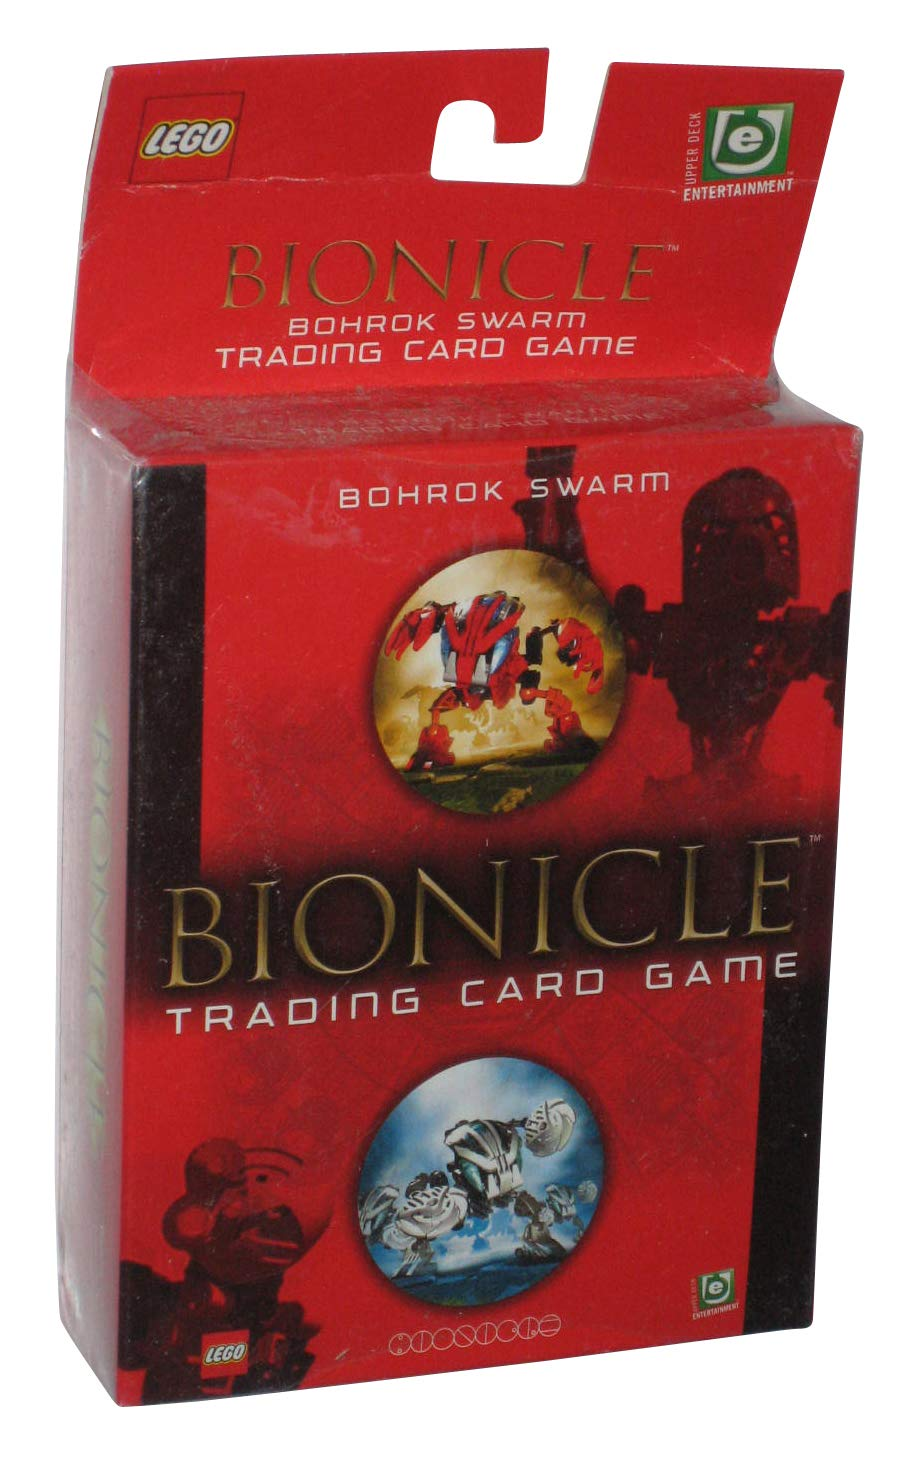 Bionicle Bohrok Swarm Trading Card Game 2-player Starter Deck